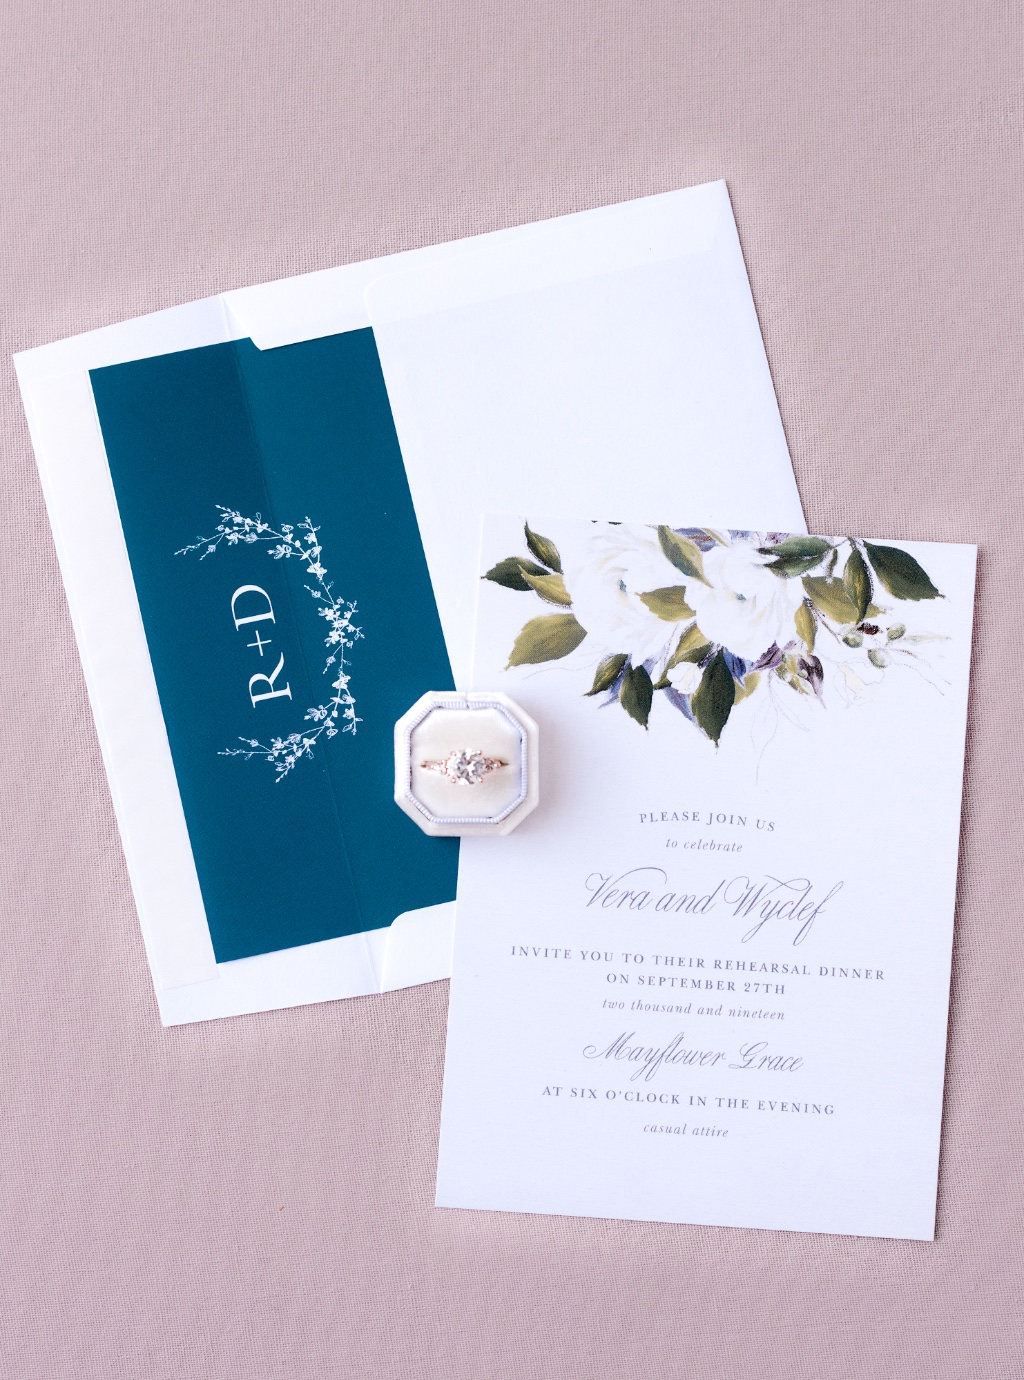 Love a good envelope detail and a monogram liner is the perfect addition to top off your design.